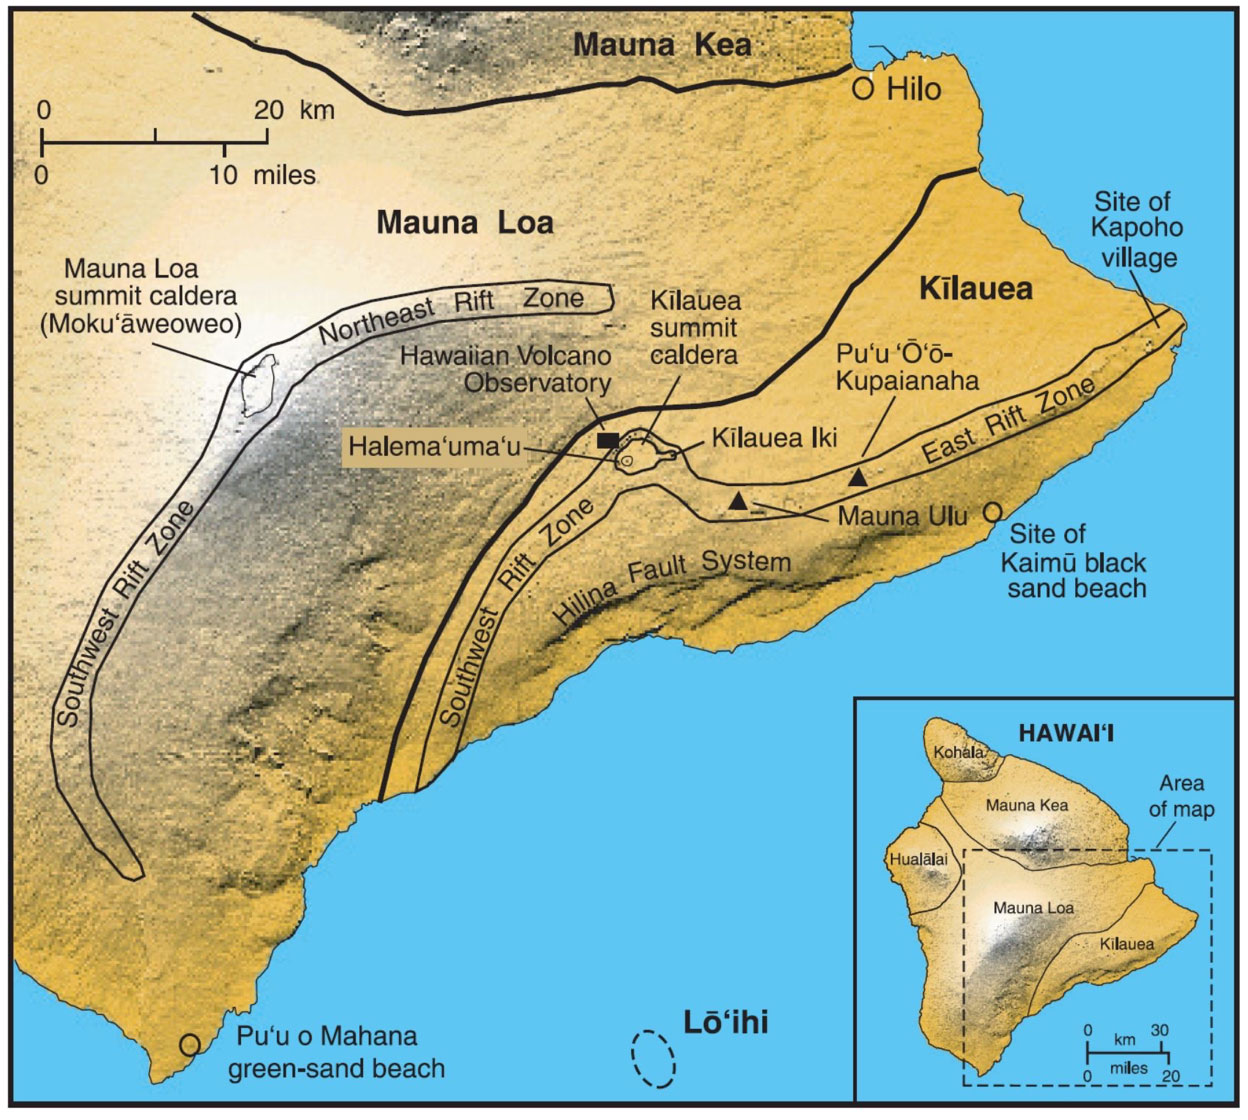 Map showing the major volcanic centers, rift zones, and fault systems in Hawai'I (USGS, 2010).